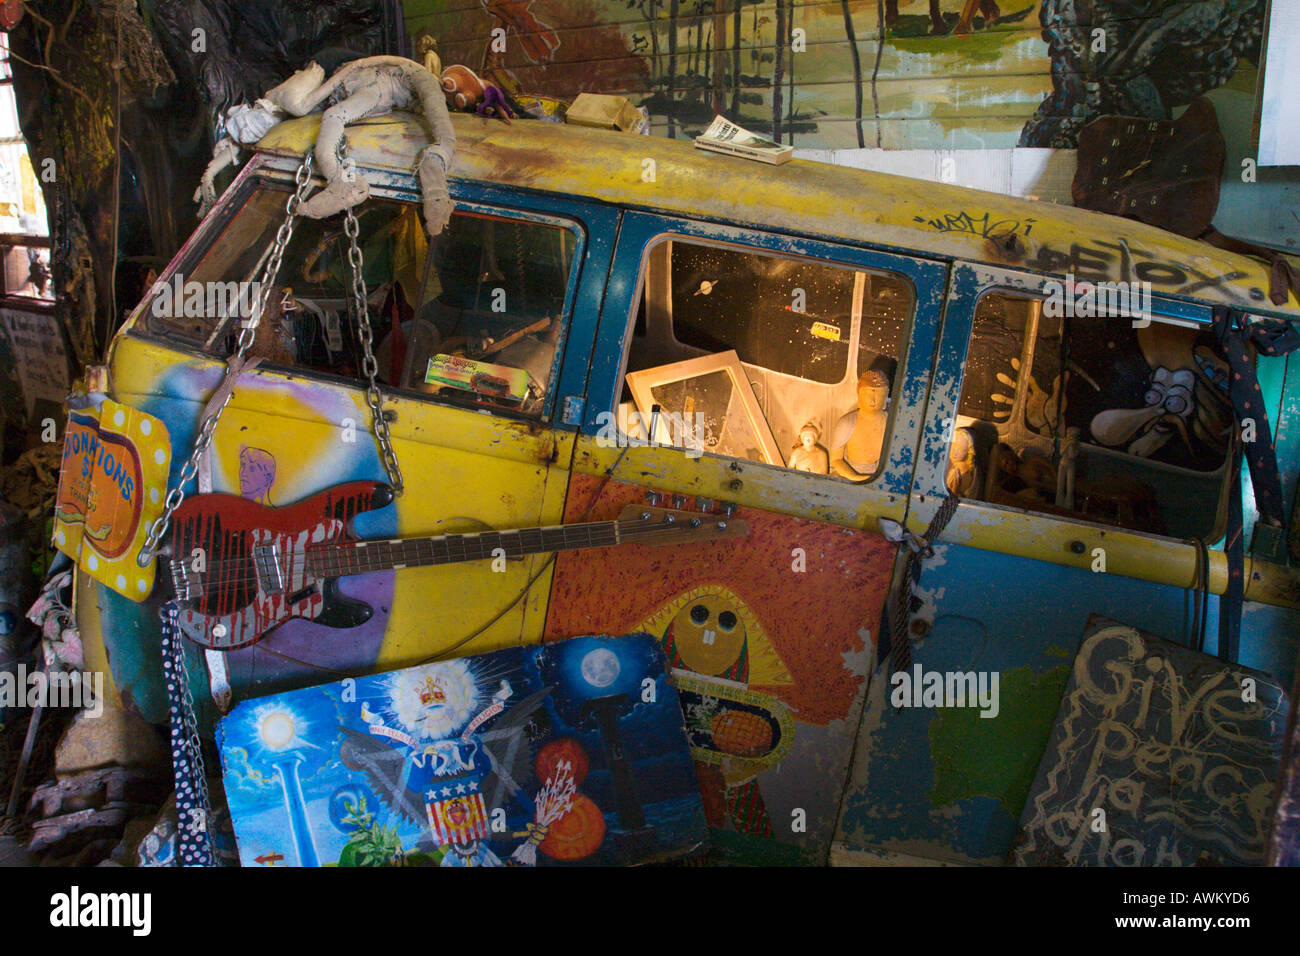 Bizarre exhibit of an old VW dormobile at the museum on Cullen Street in the hippie town of Nimbin NSW Australia Stock Photo